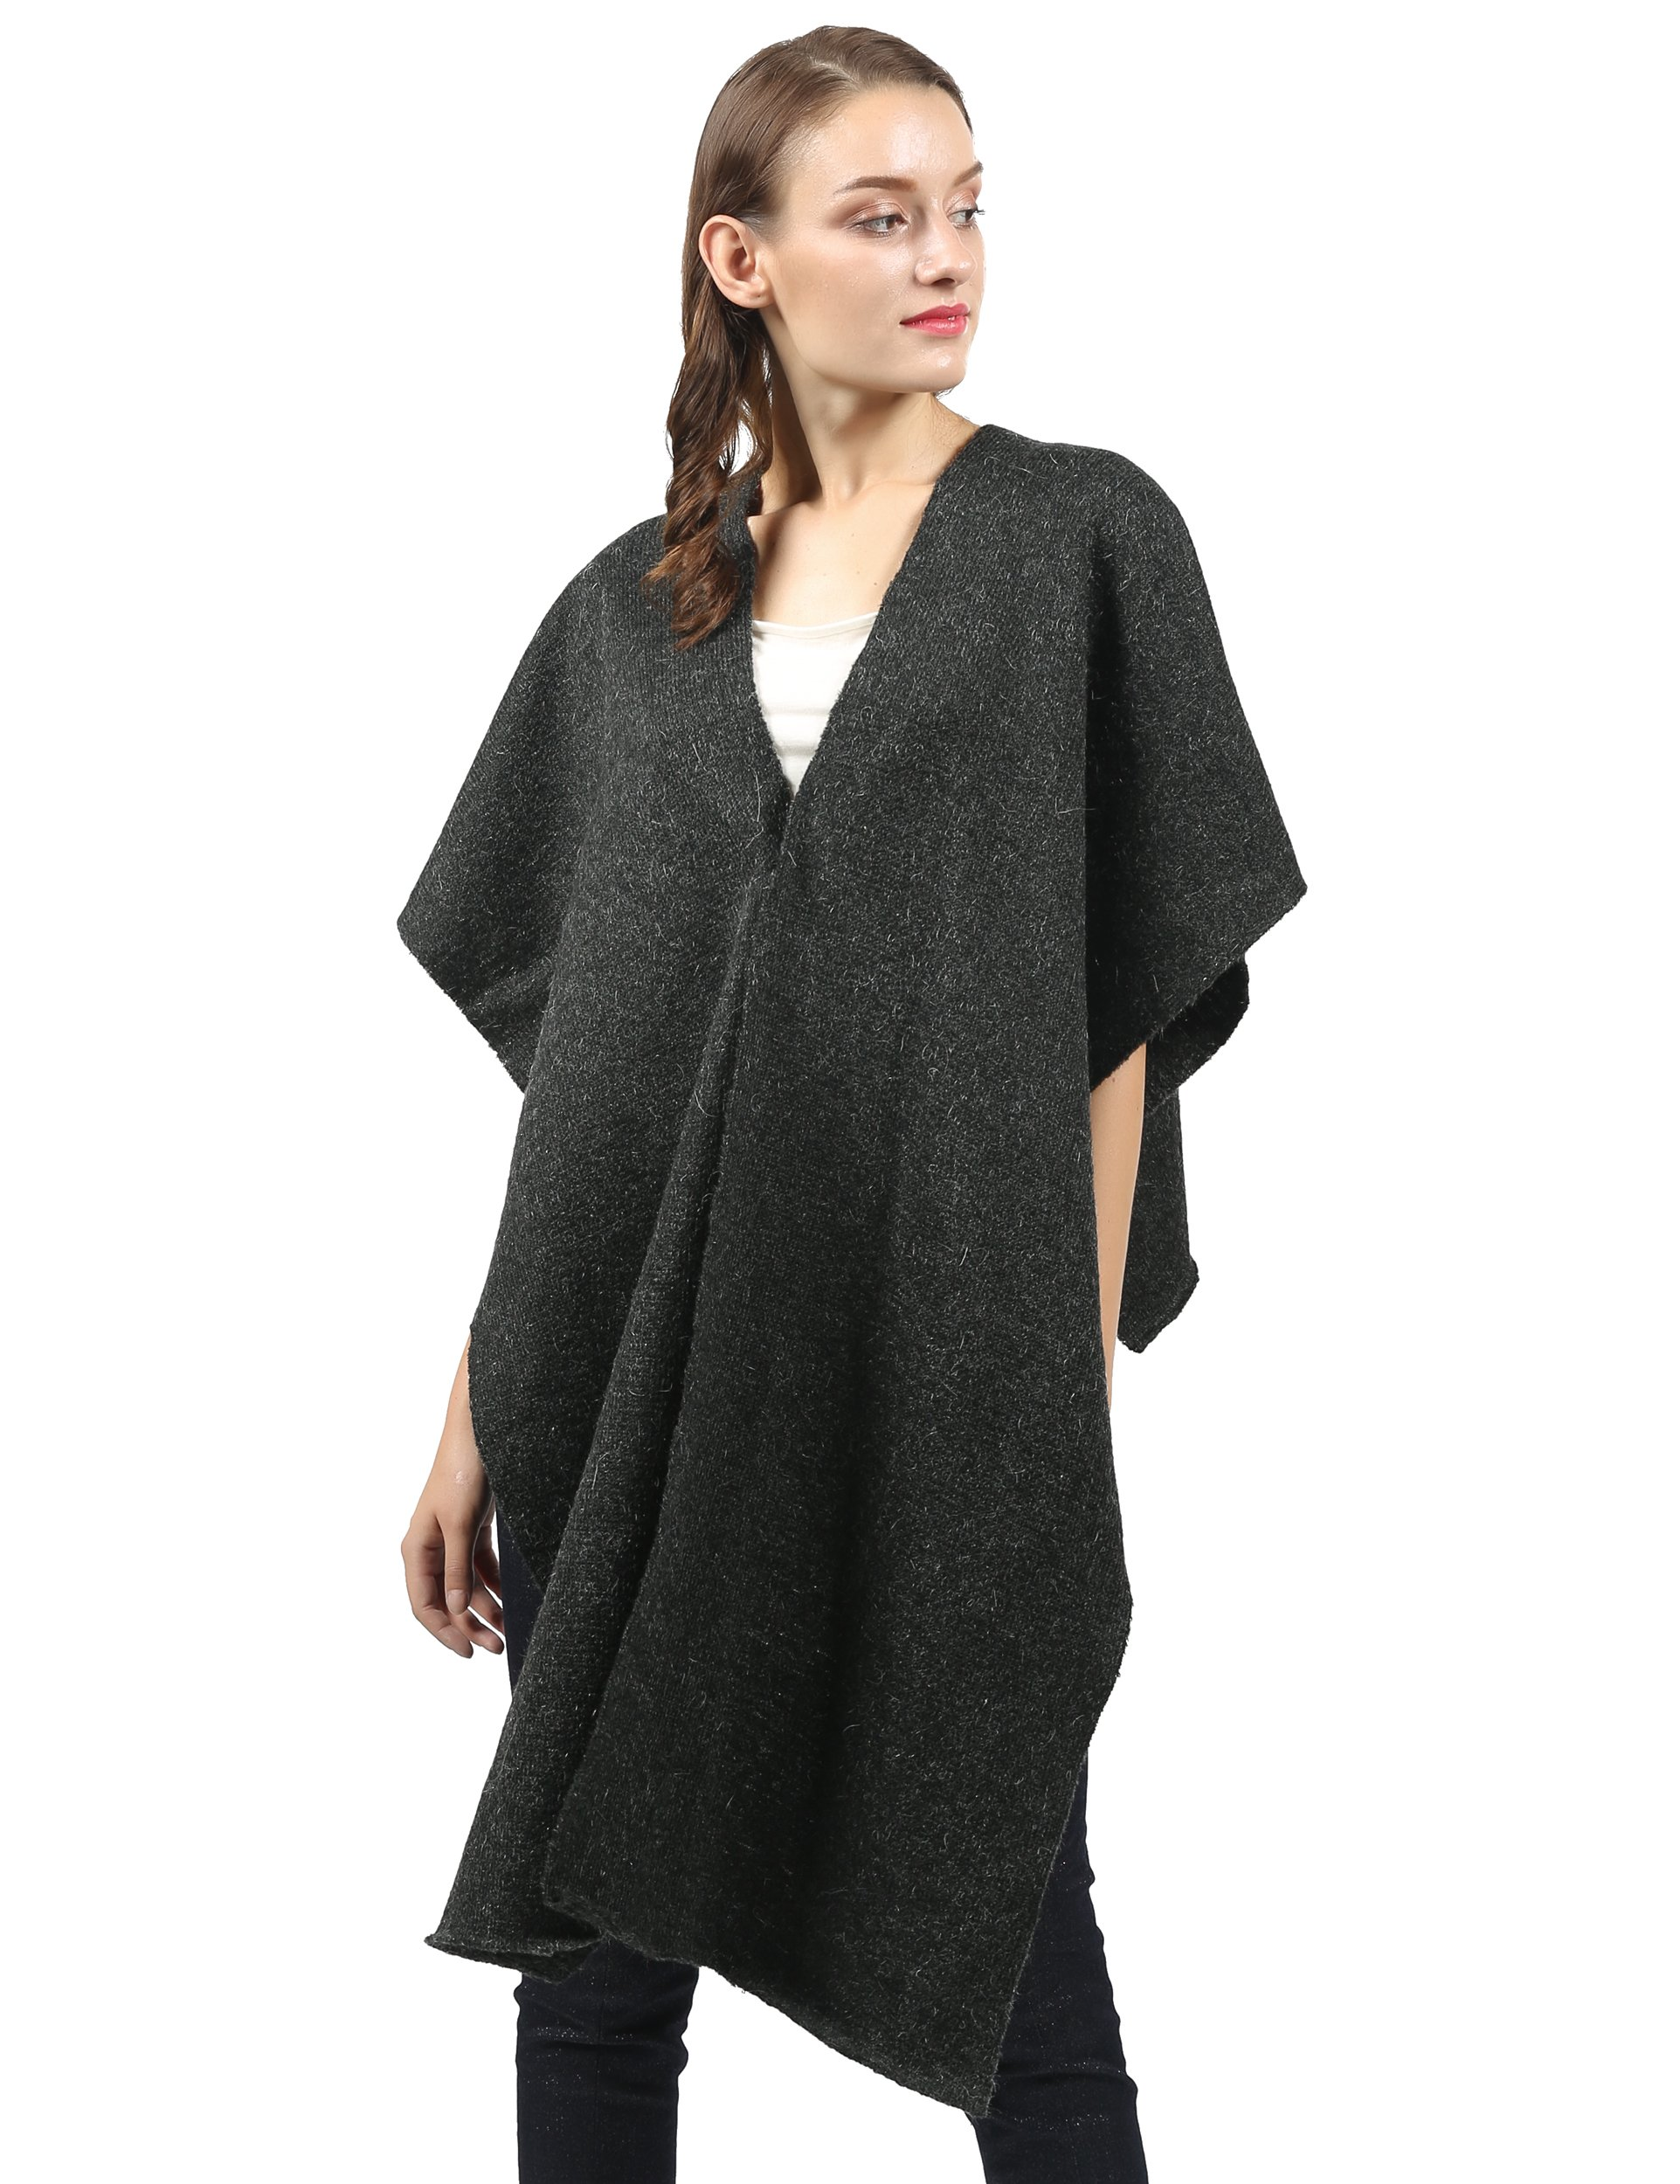 Wool Shawl Wrap, Gray Ruana, Long Scarf, Open Front Cardigan, Cover Up For Women